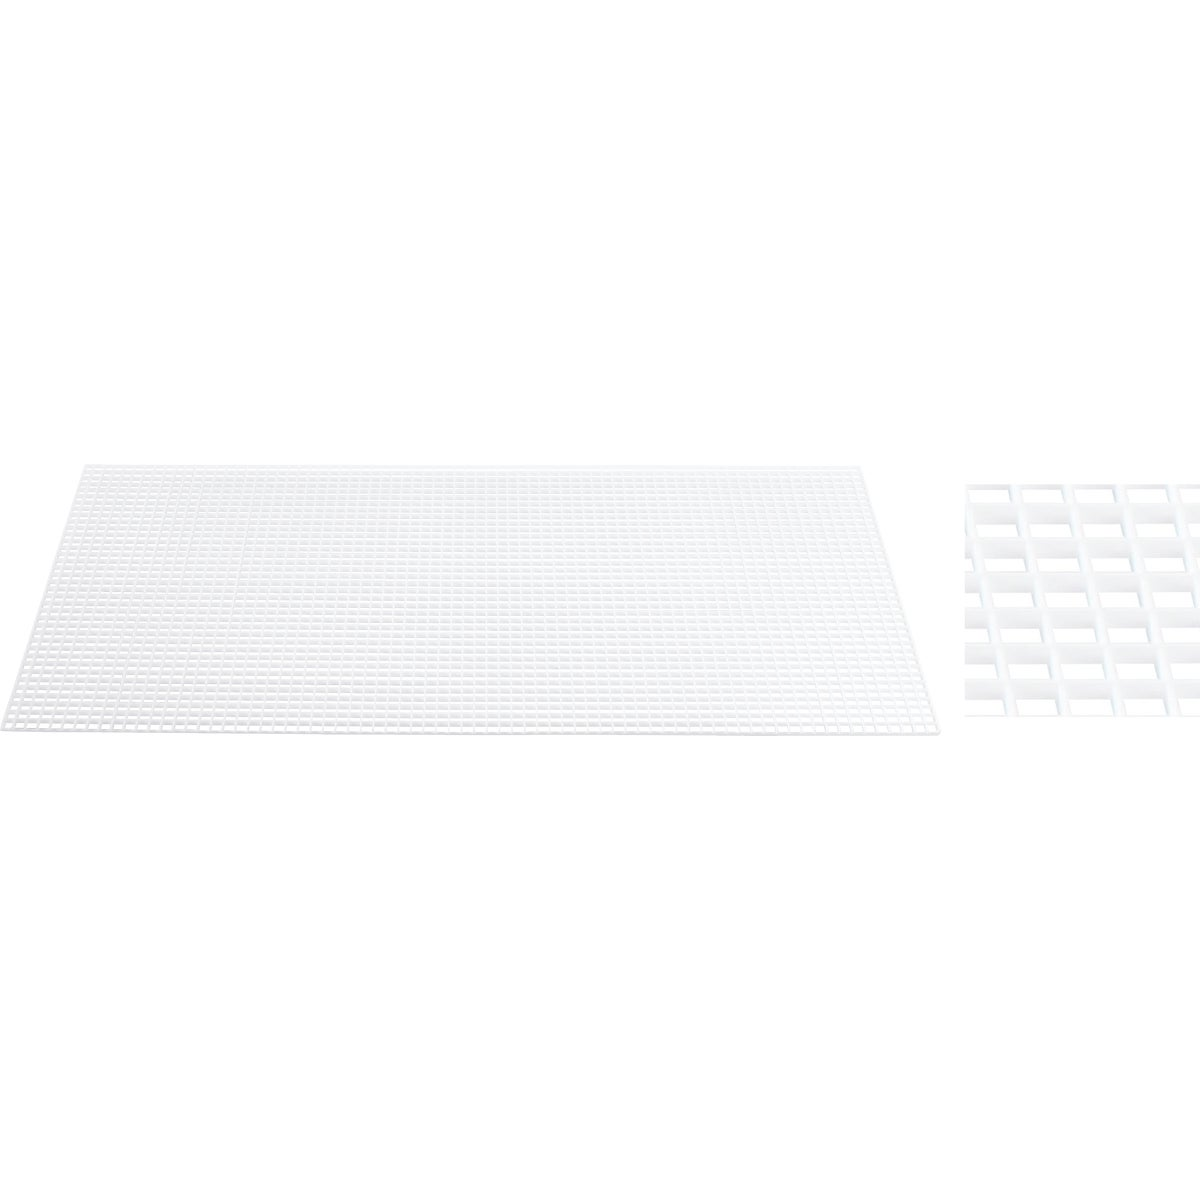 "3/8"" WHT EGG CRATE PANEL - 1199233A by Plaskolite Inc"